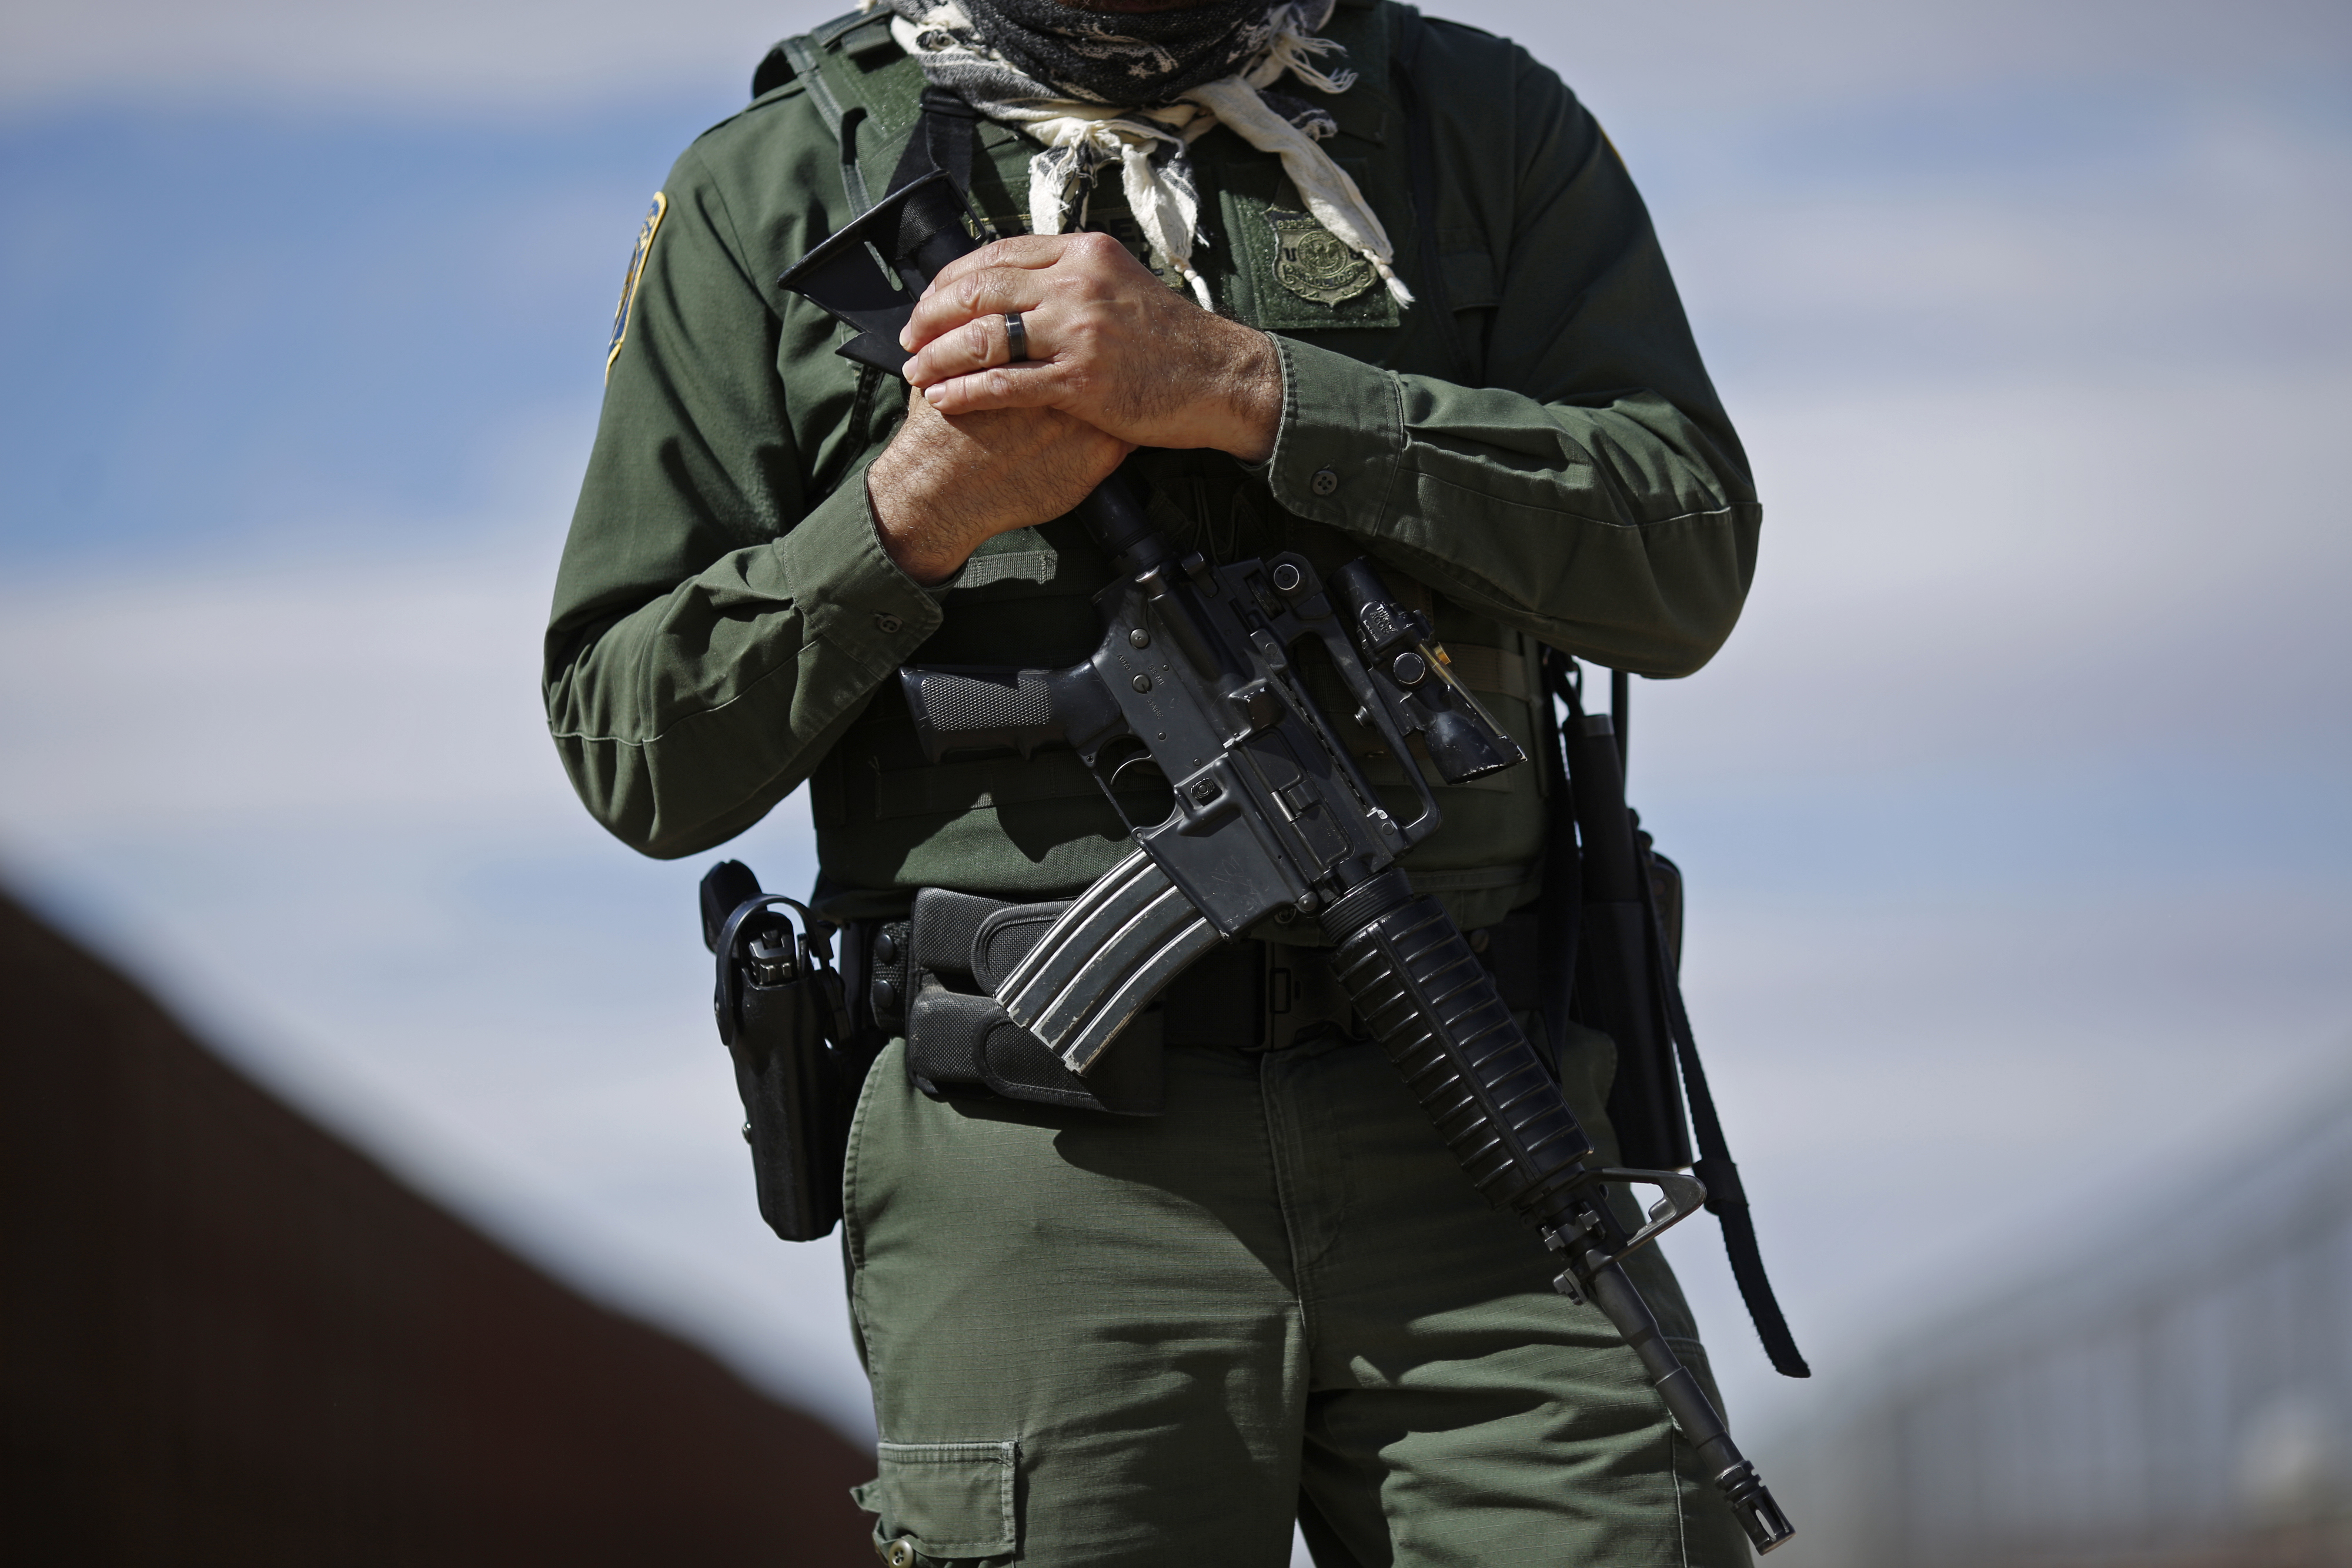 A U.S. Border Patrol agent stands for a photograph while keeping watch along the U.S. and Mexico border in Santa Teresa, New Mexico, U.S., on Friday, Feb. 17, 2017. Photographer: Luke Sharrett/Bloomberg via Getty Images